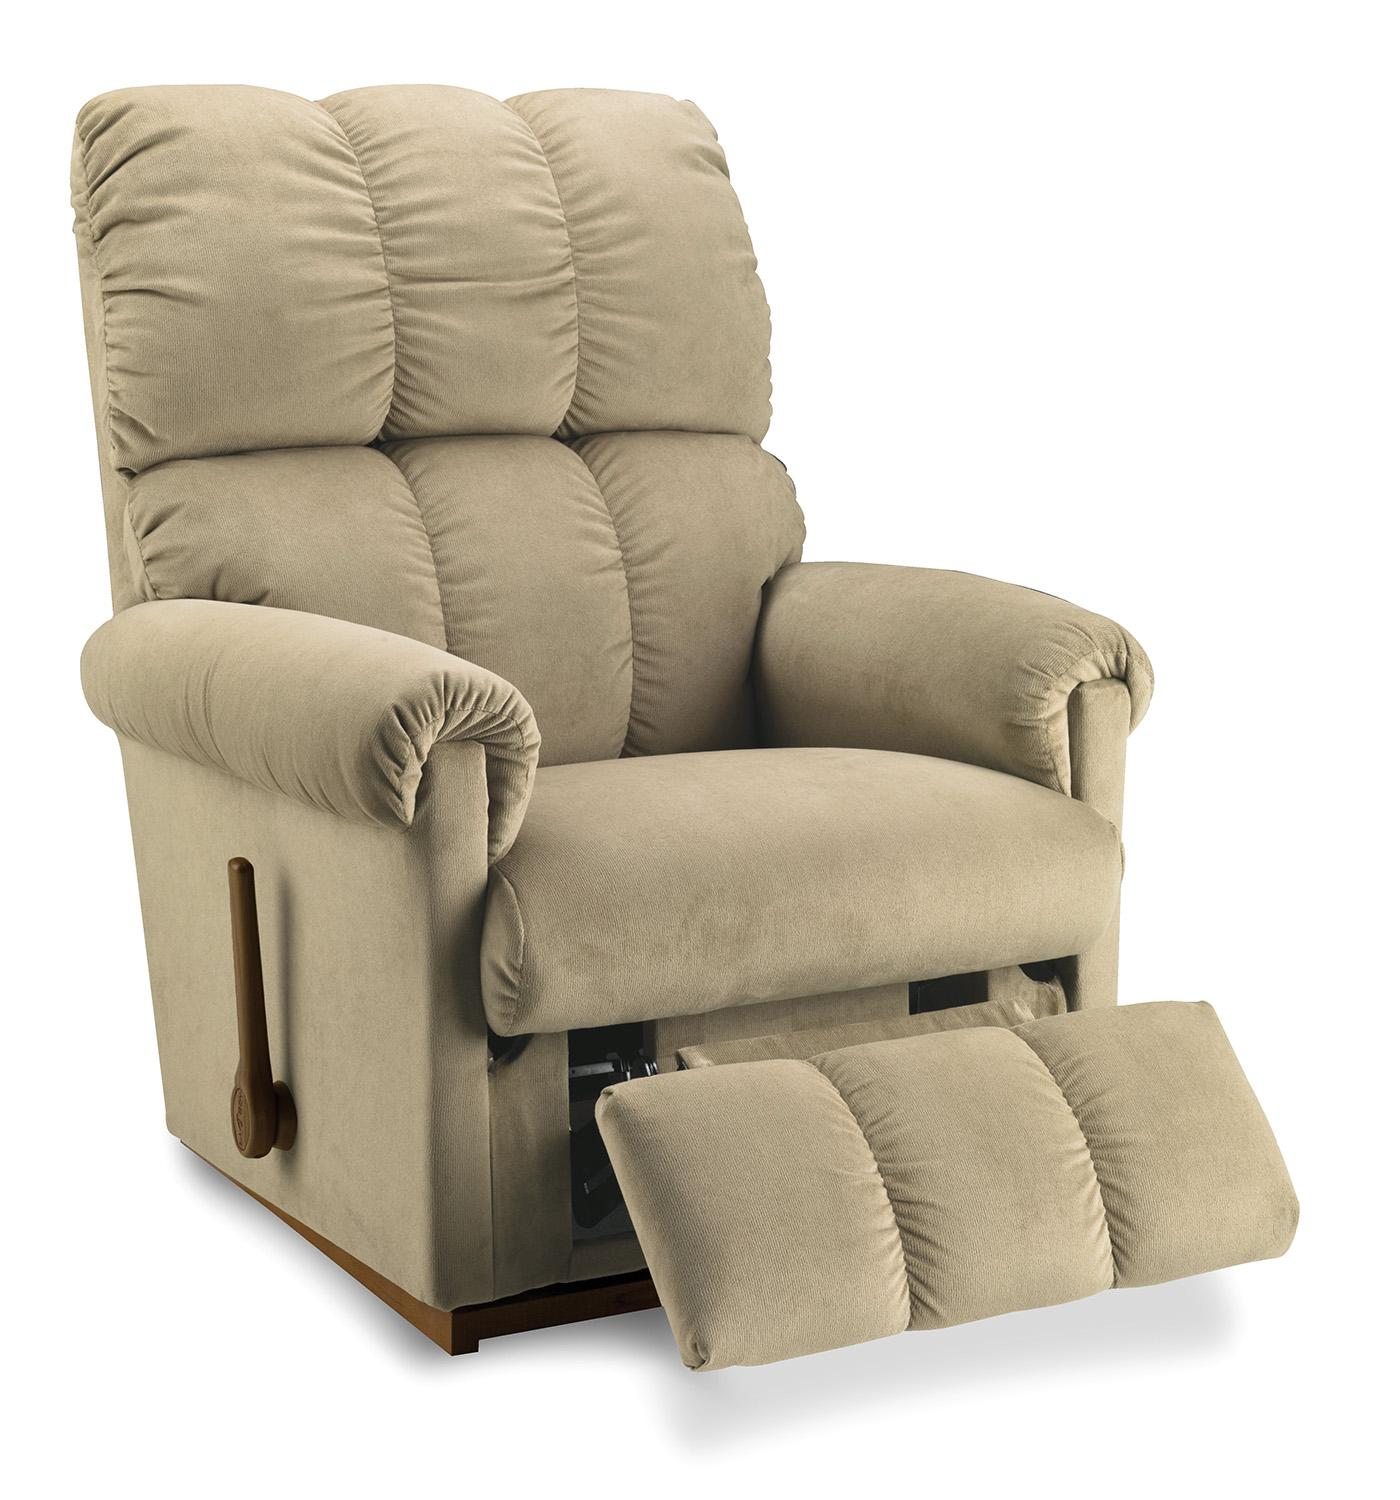 lazy boy chairs on sale old wicker rocker recliners bing images